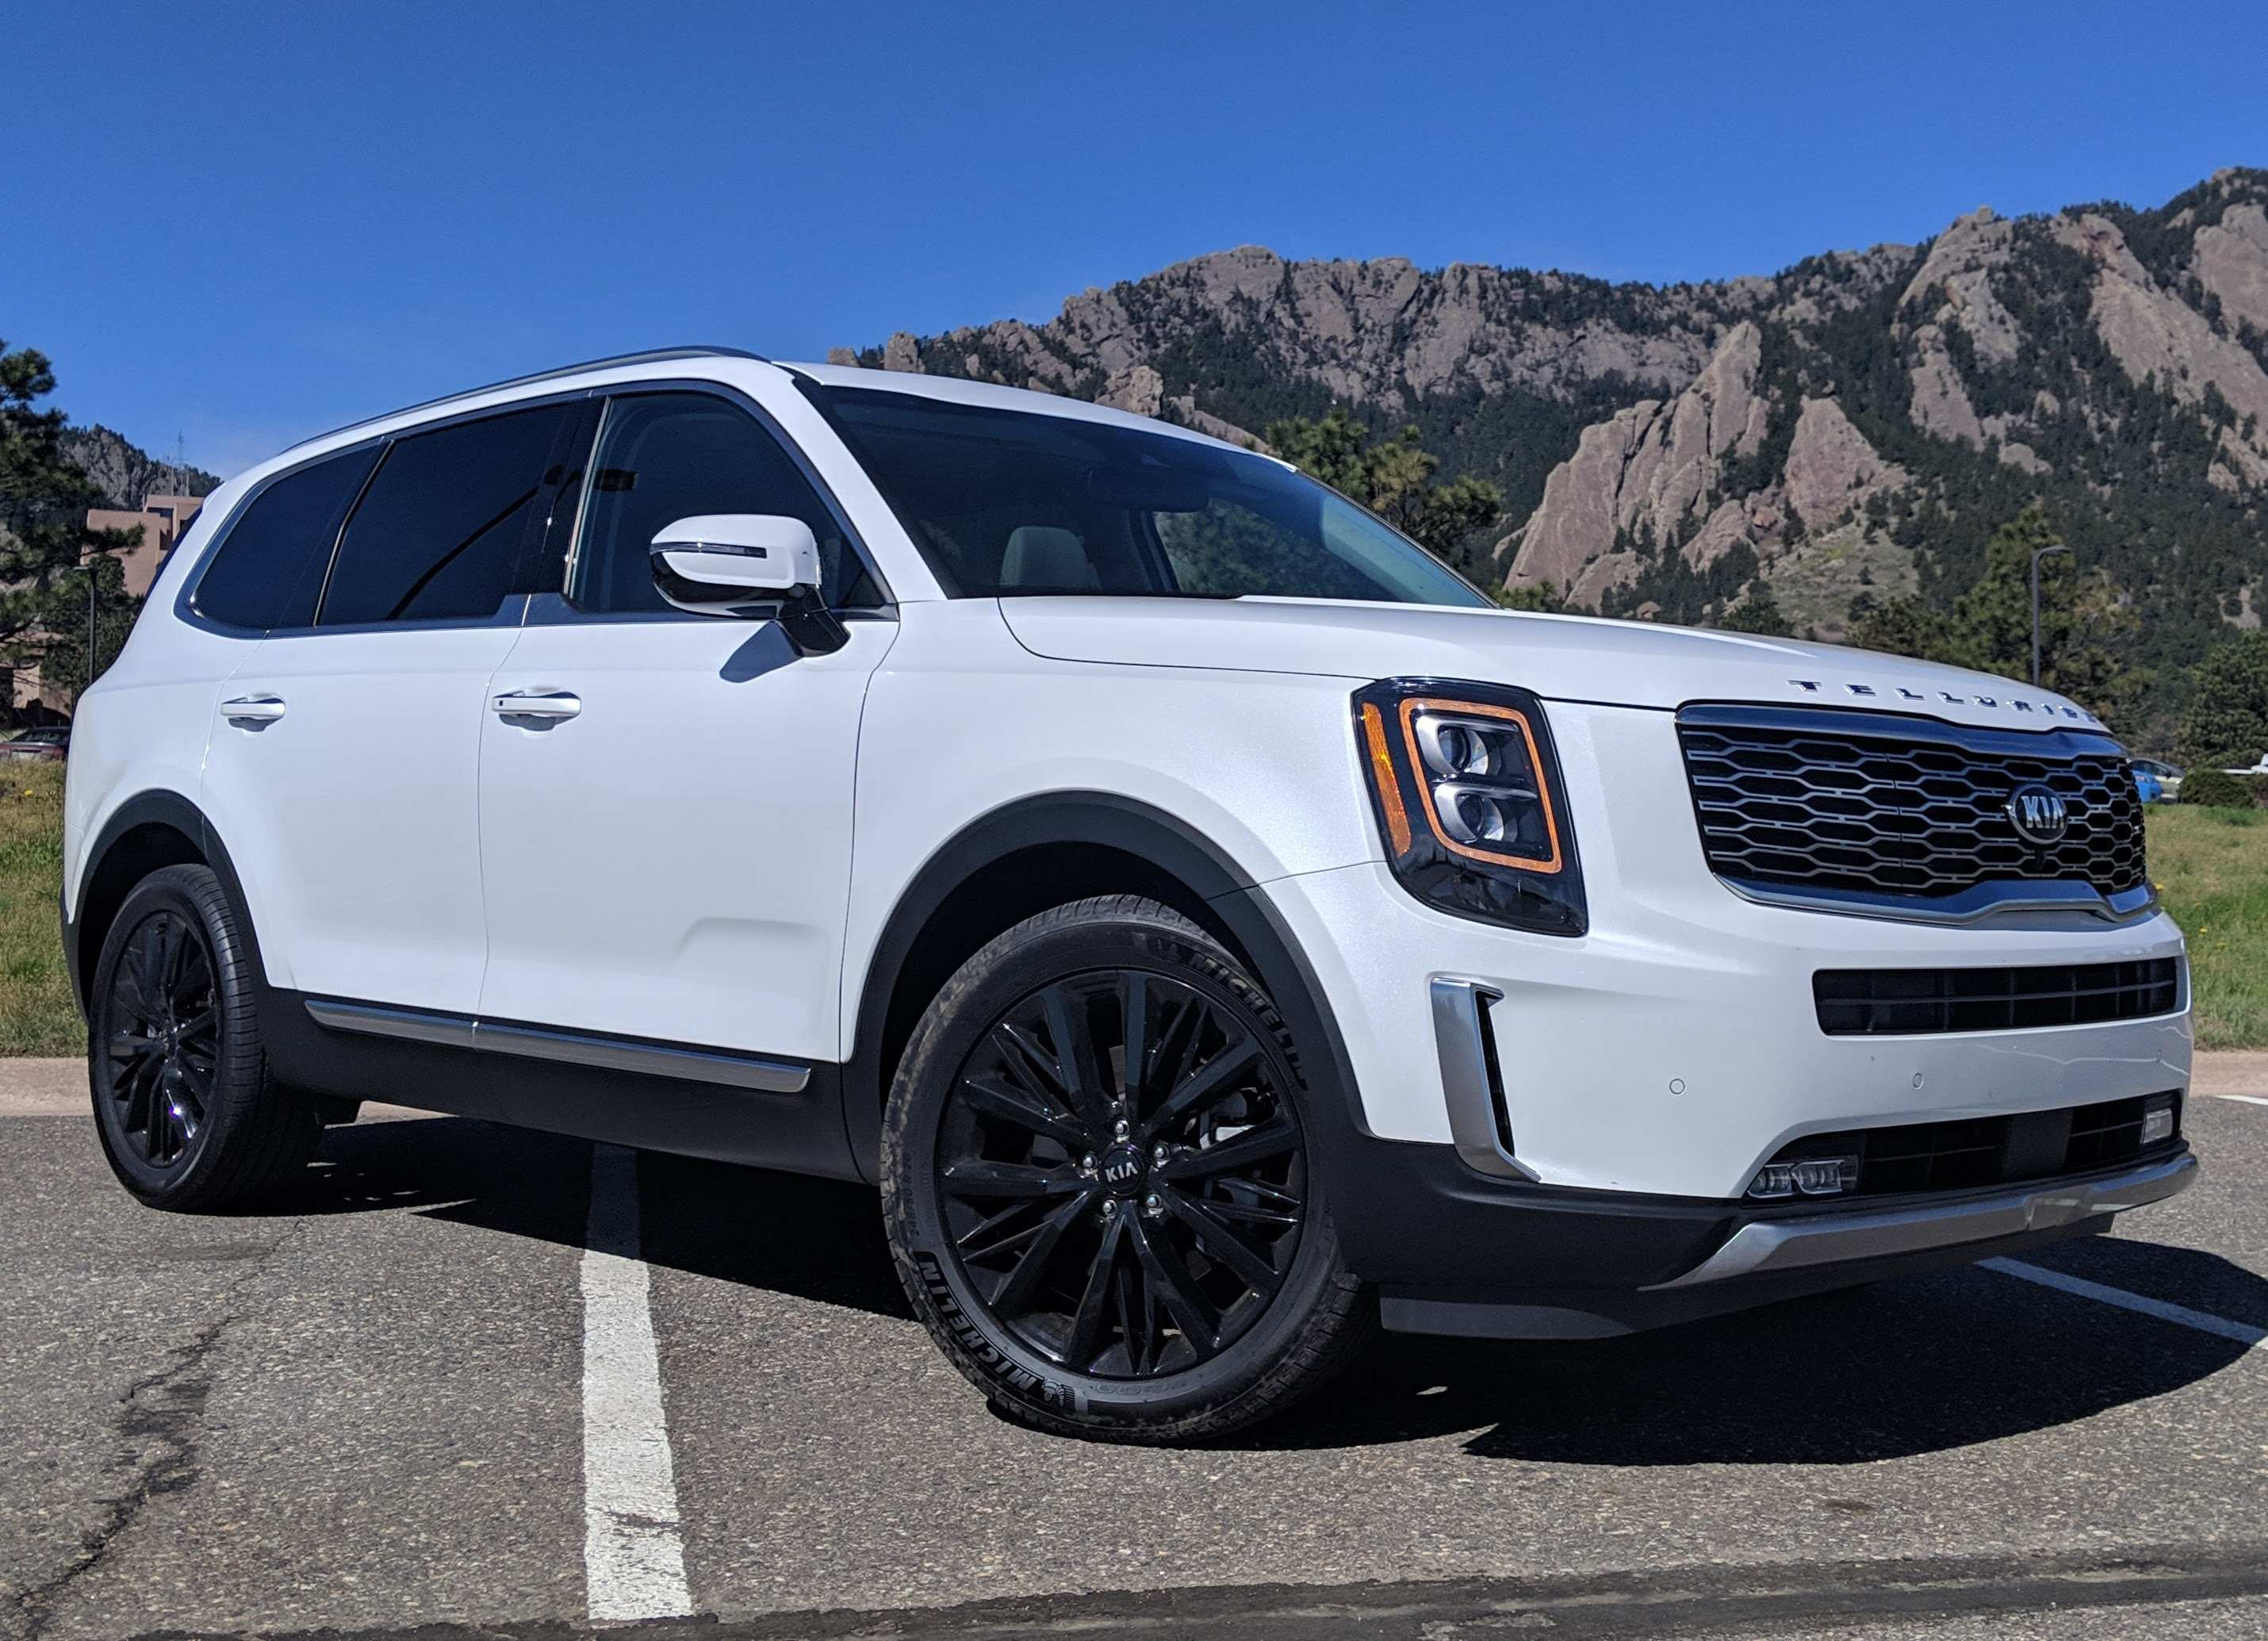 12 All New Kia Telluride 2020 For Sale 2 Specs And Review